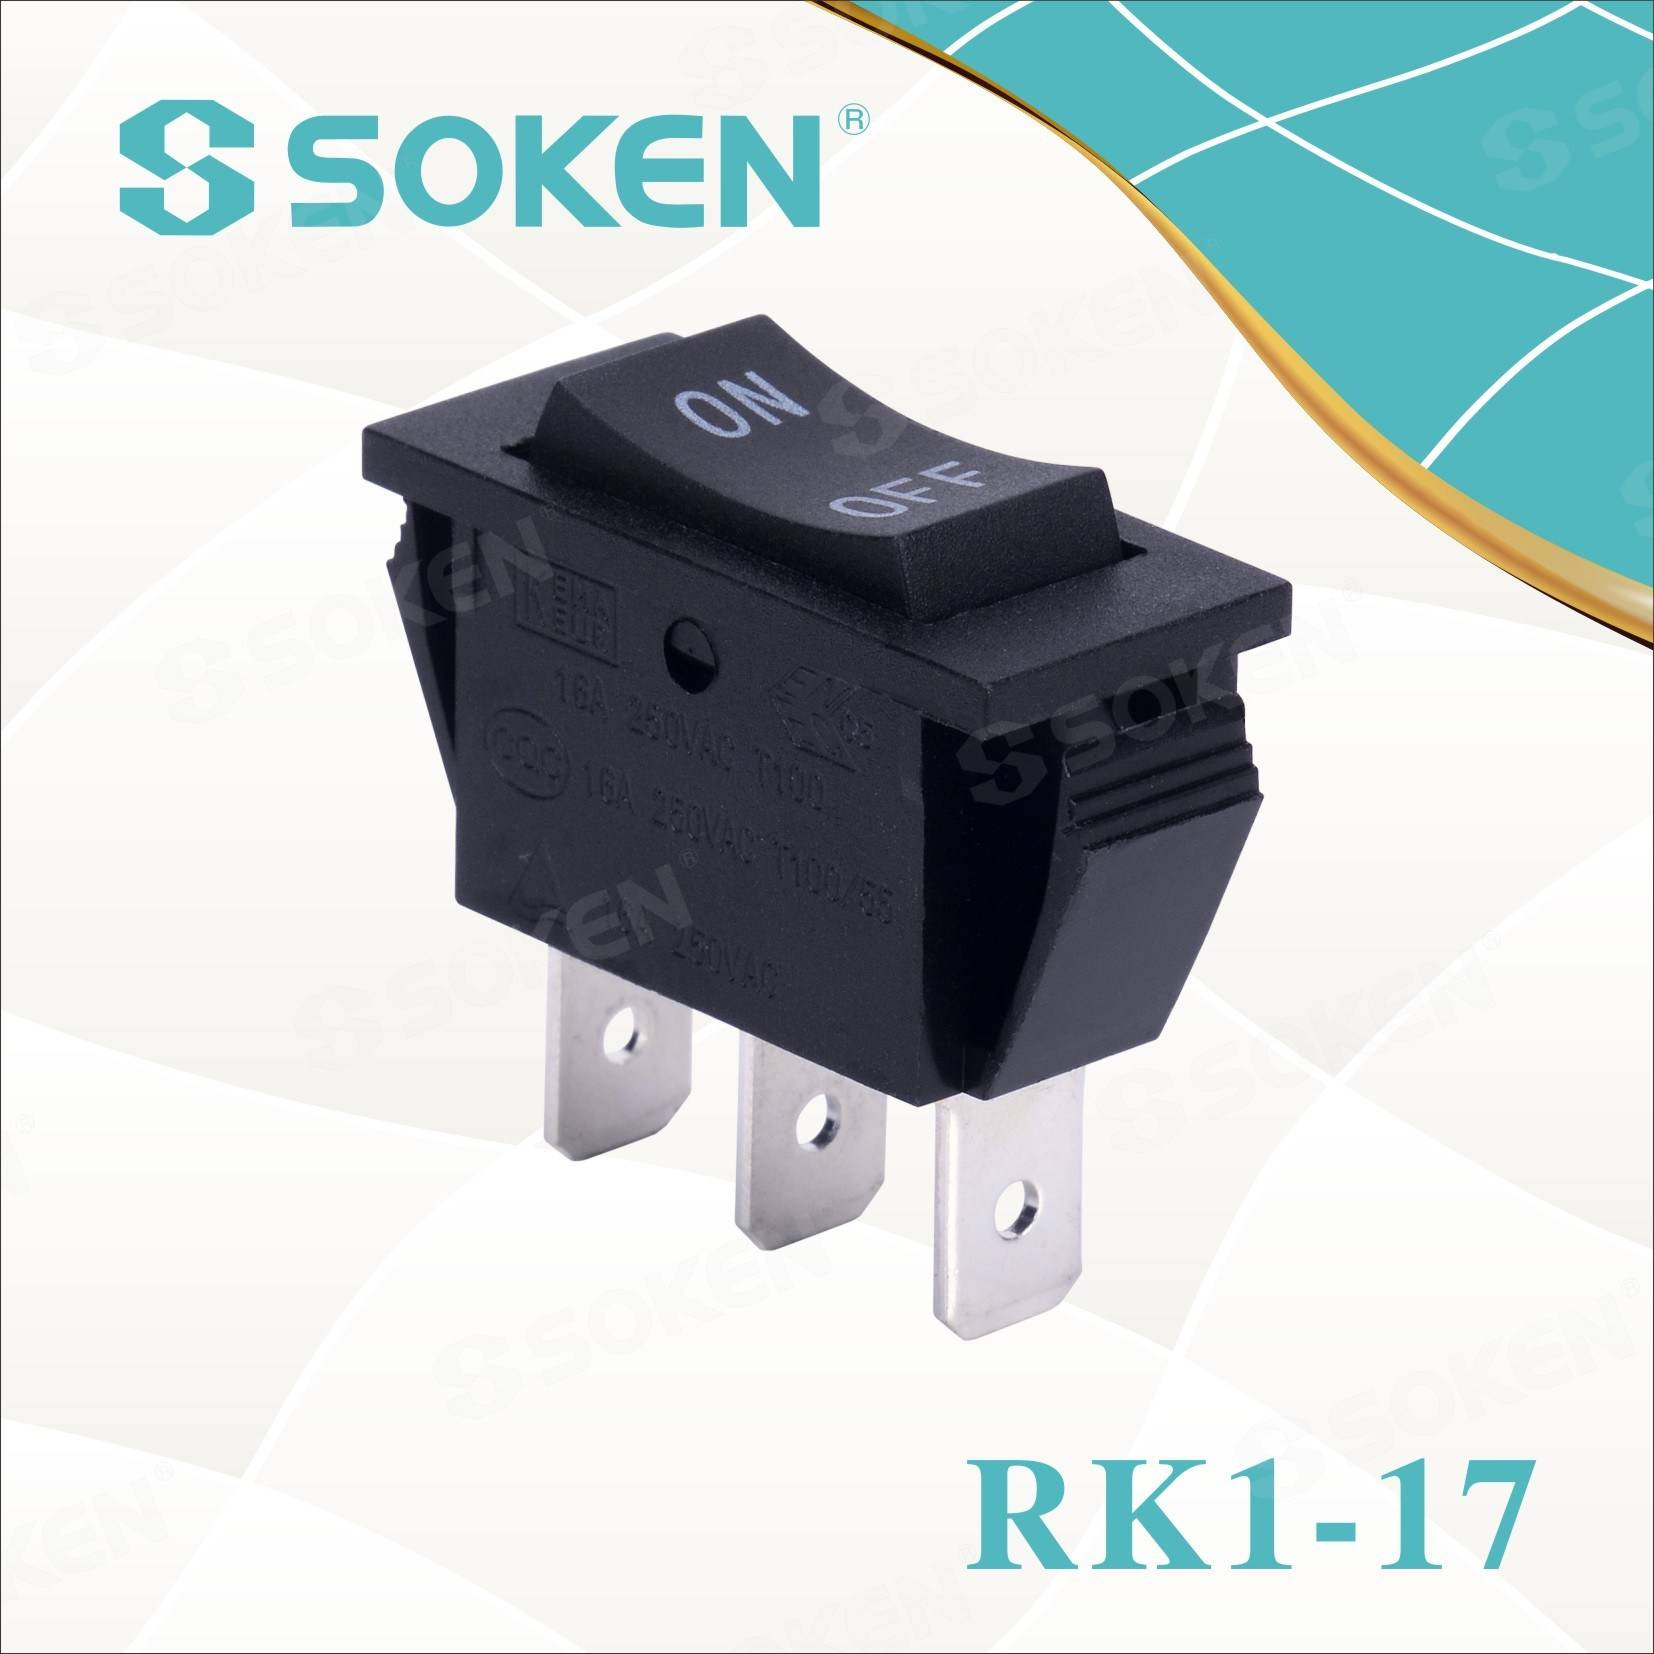 Best Price for Spst Spdt Rocker Switches -